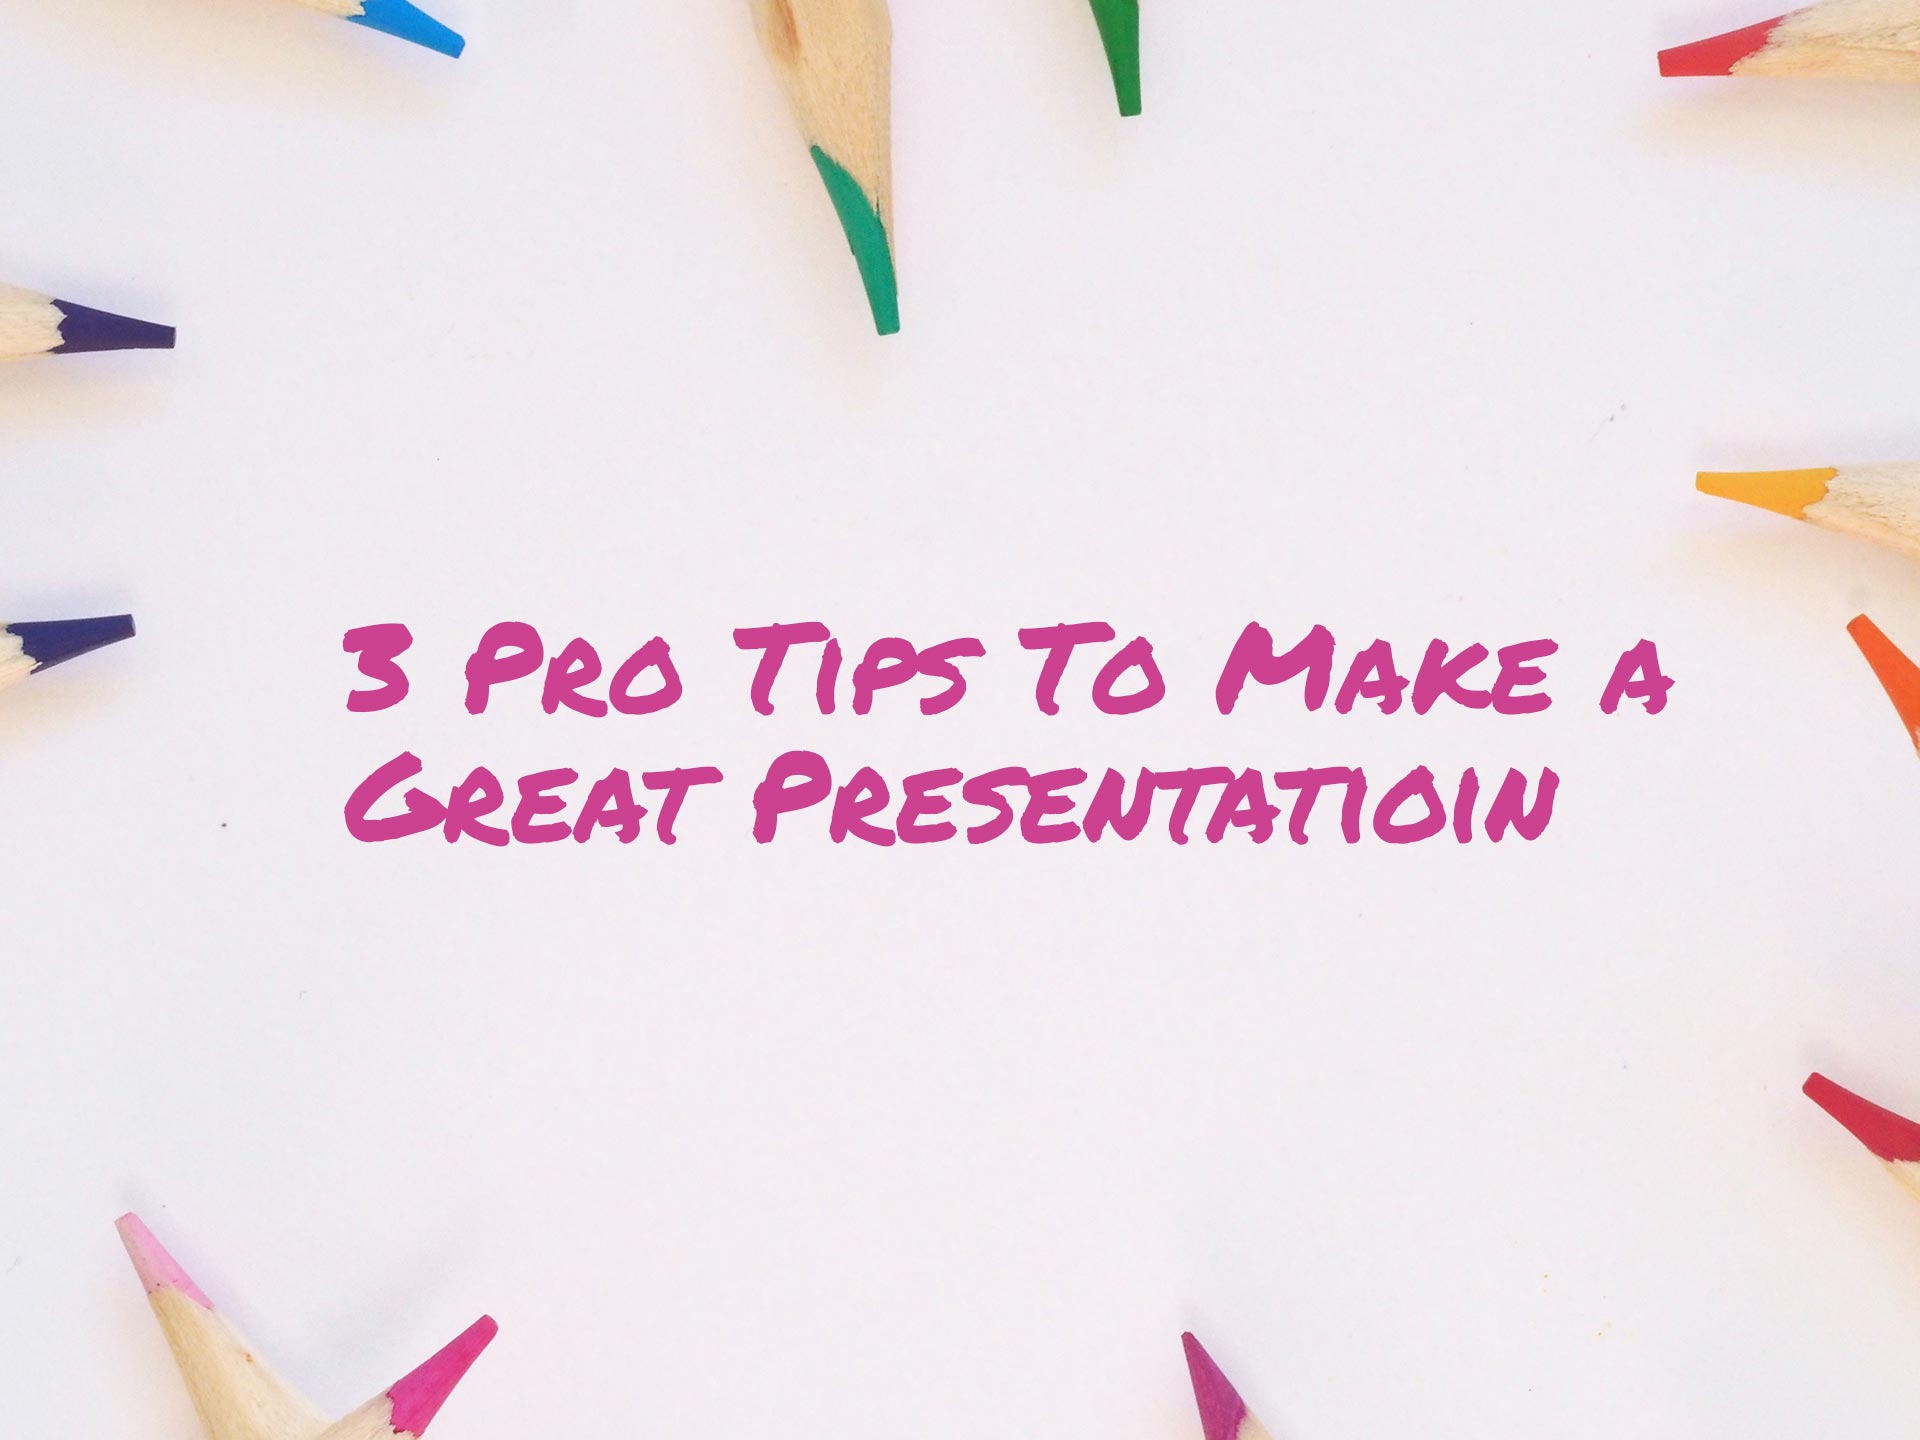 3 Pro Tips To Make A Great Presentation